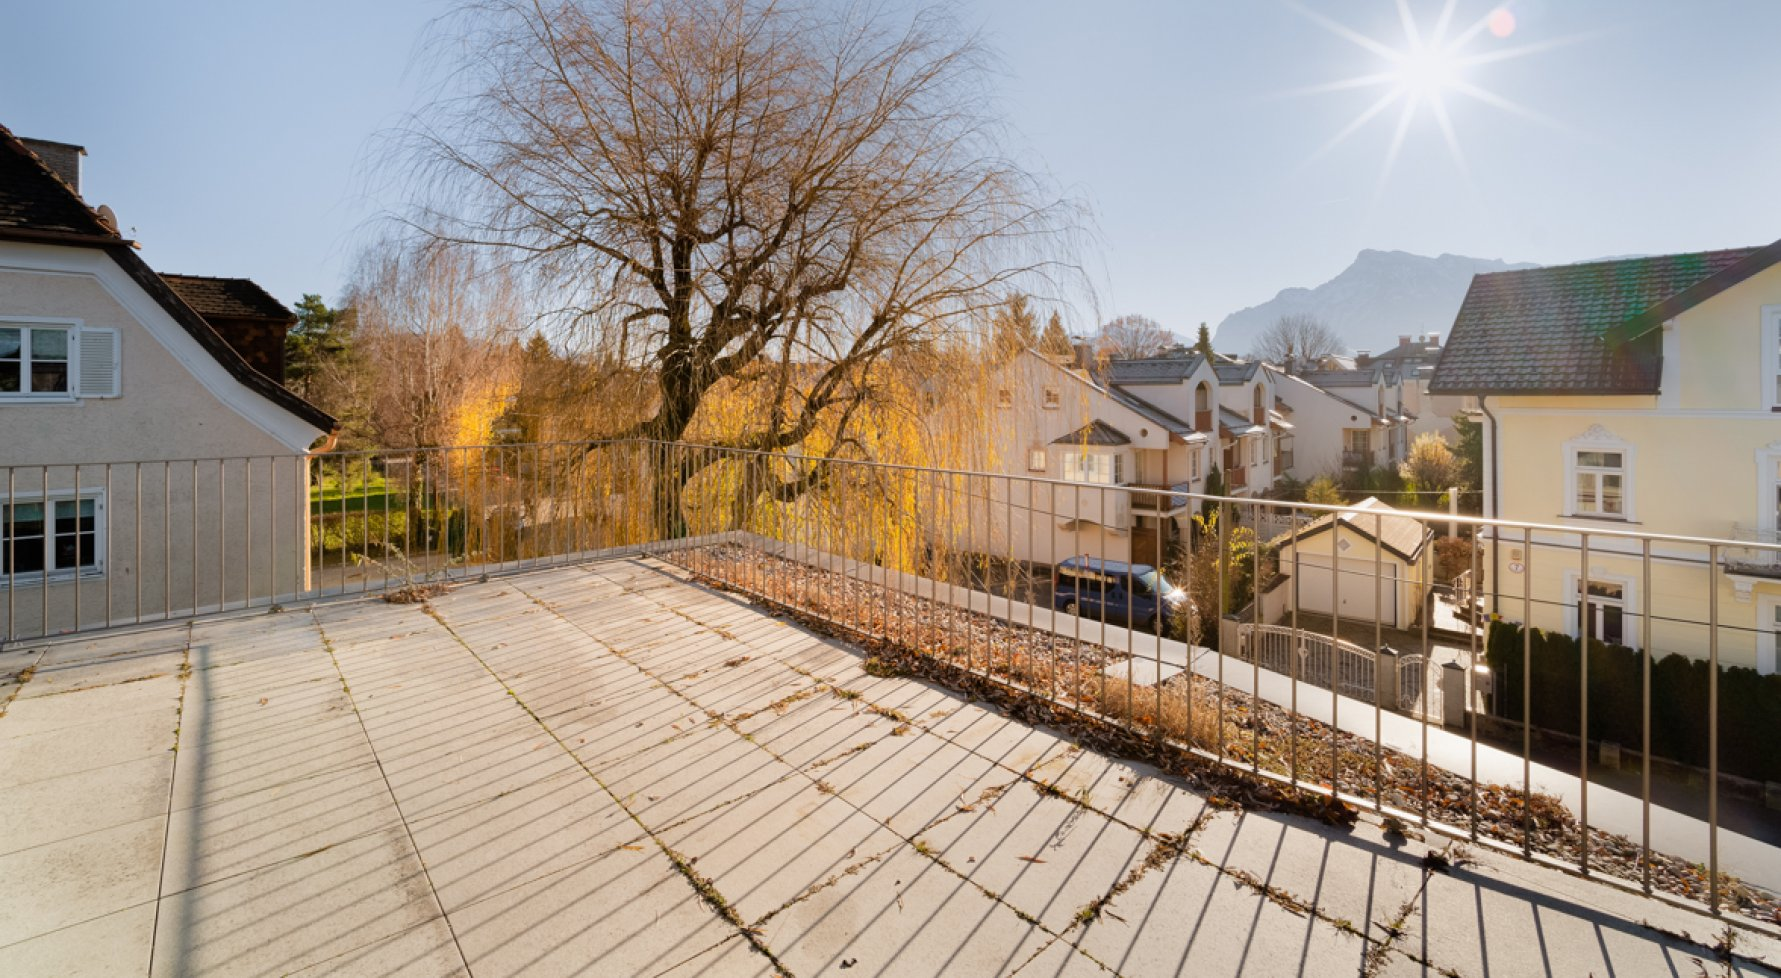 Property in 5020 Riedenburg/Maxglan - Salzburg: 127m² lifestyle with 80m² sun terrace in Maxglan - picture 1